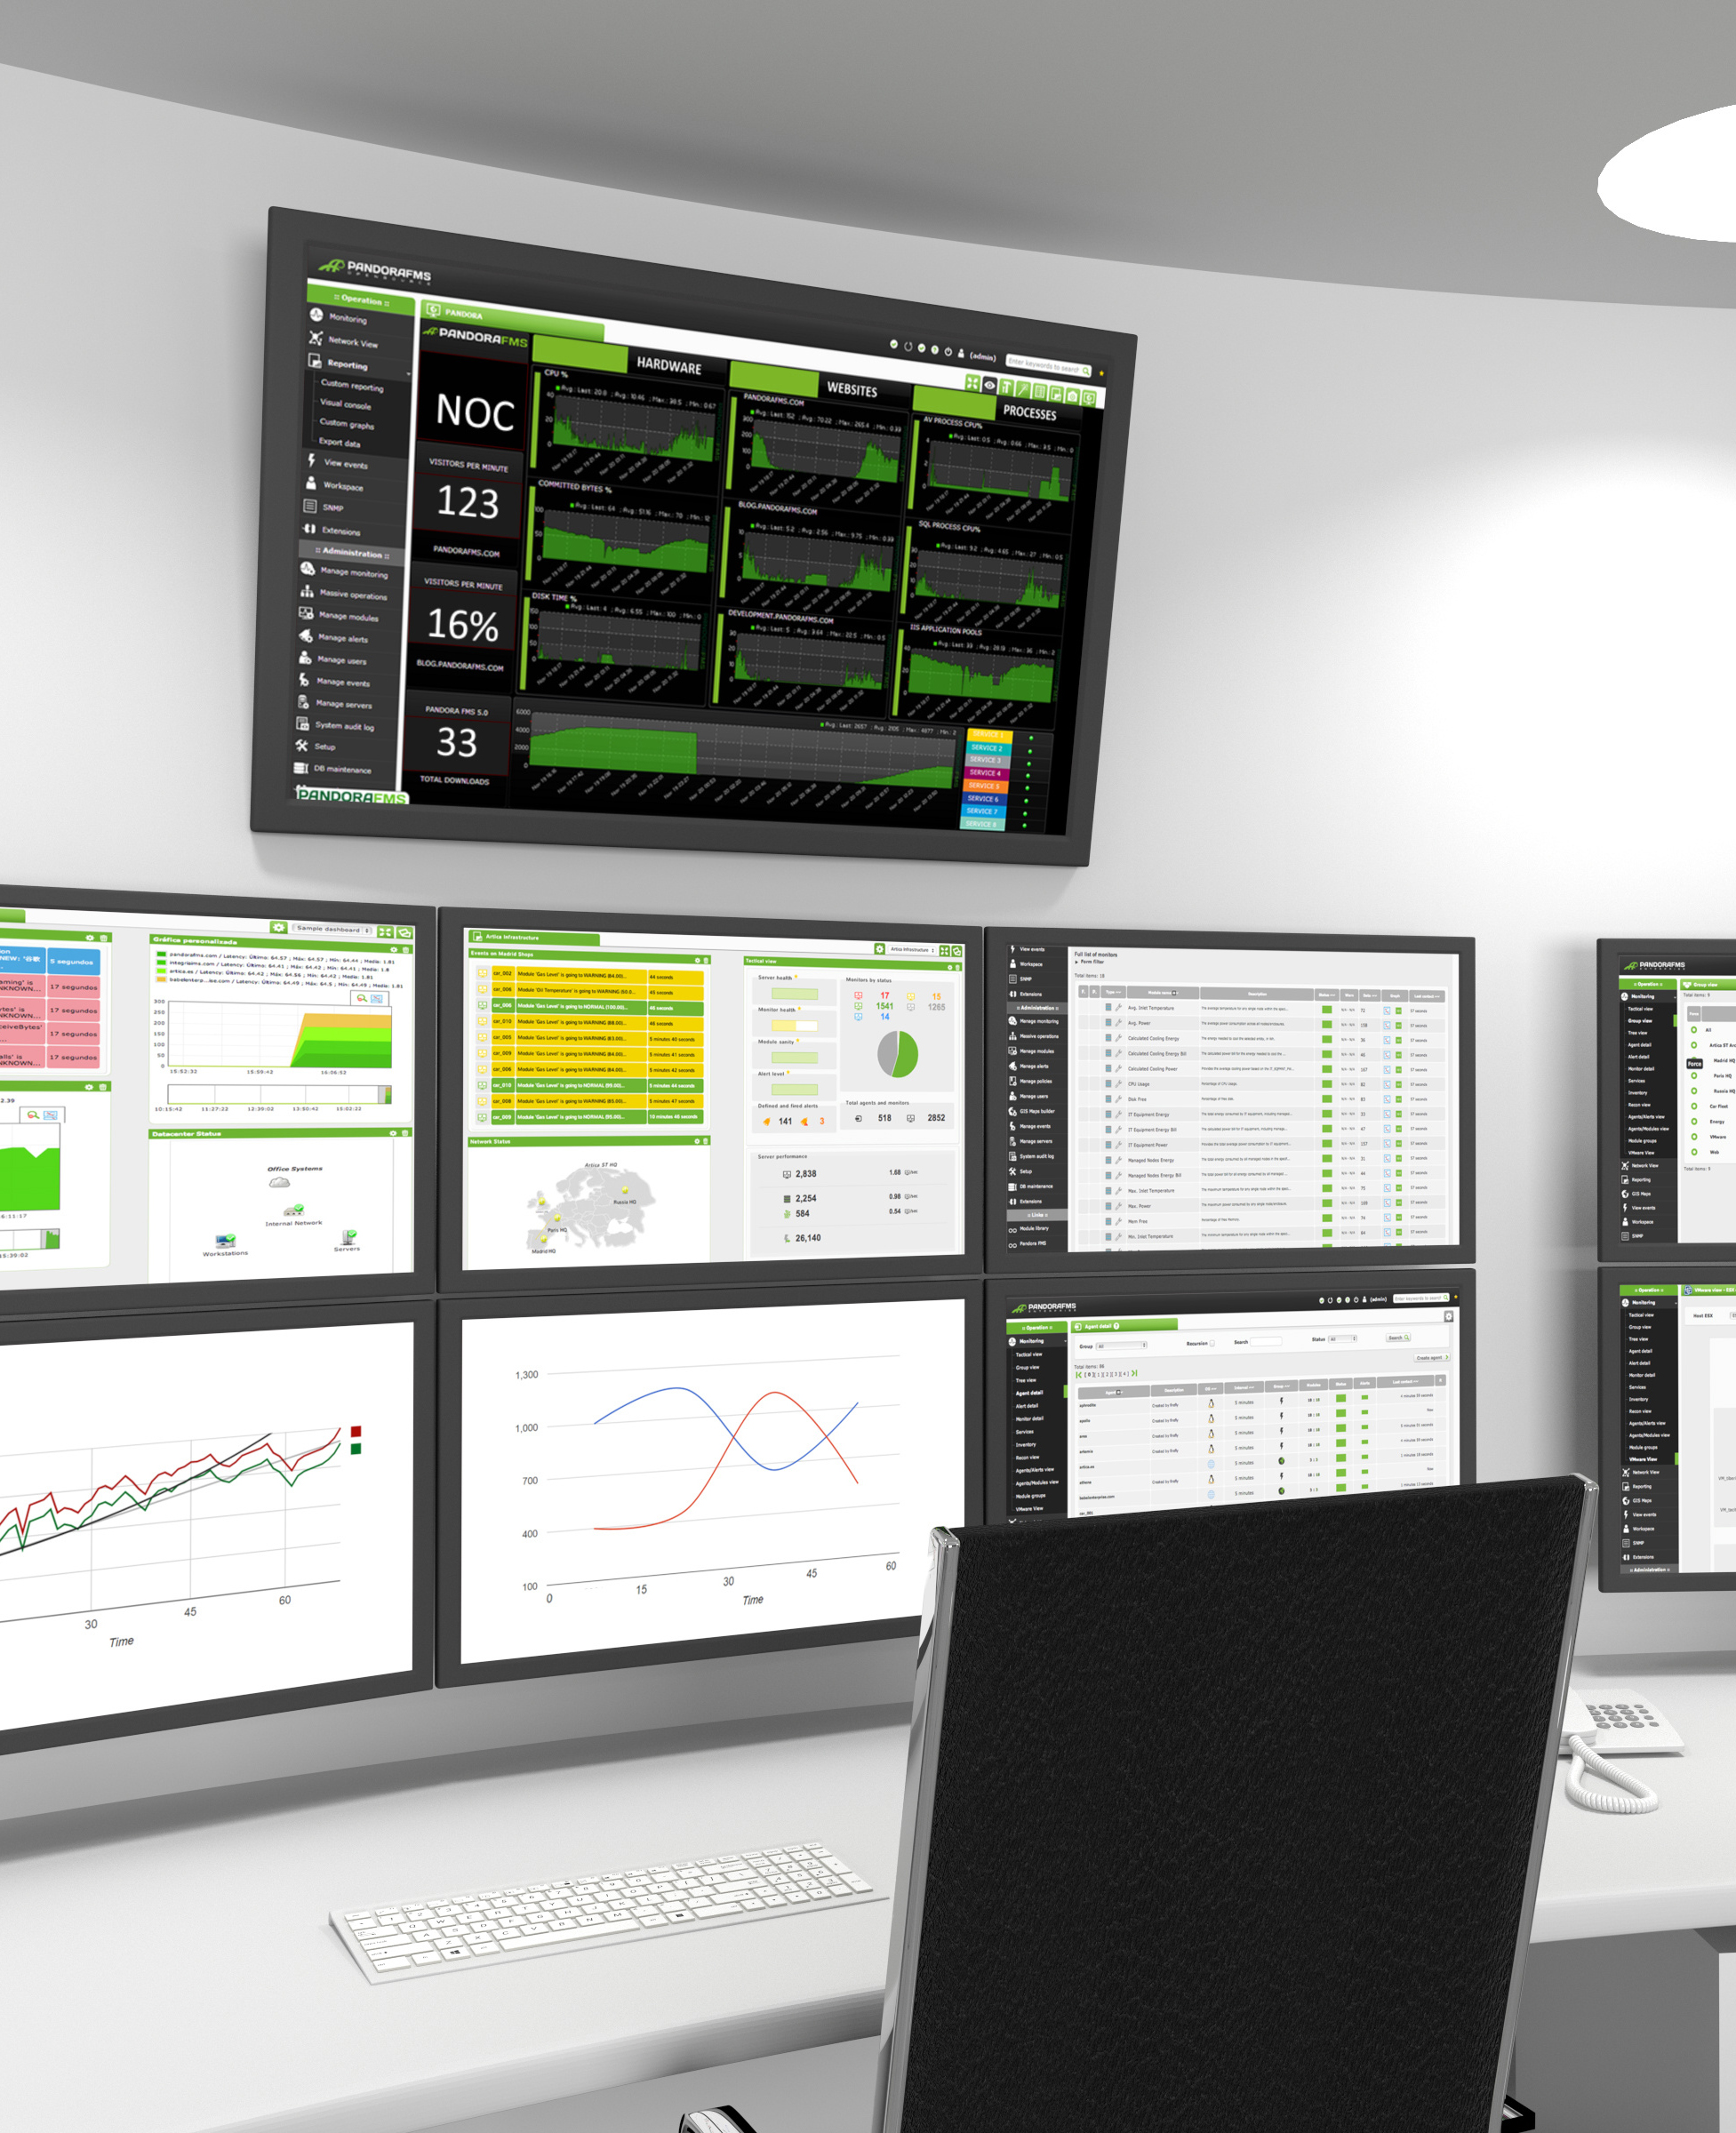 NOC / SOC Close-up - A close-up of a Network or Security Operations Center. A set of monitors shows monitoring statistics.